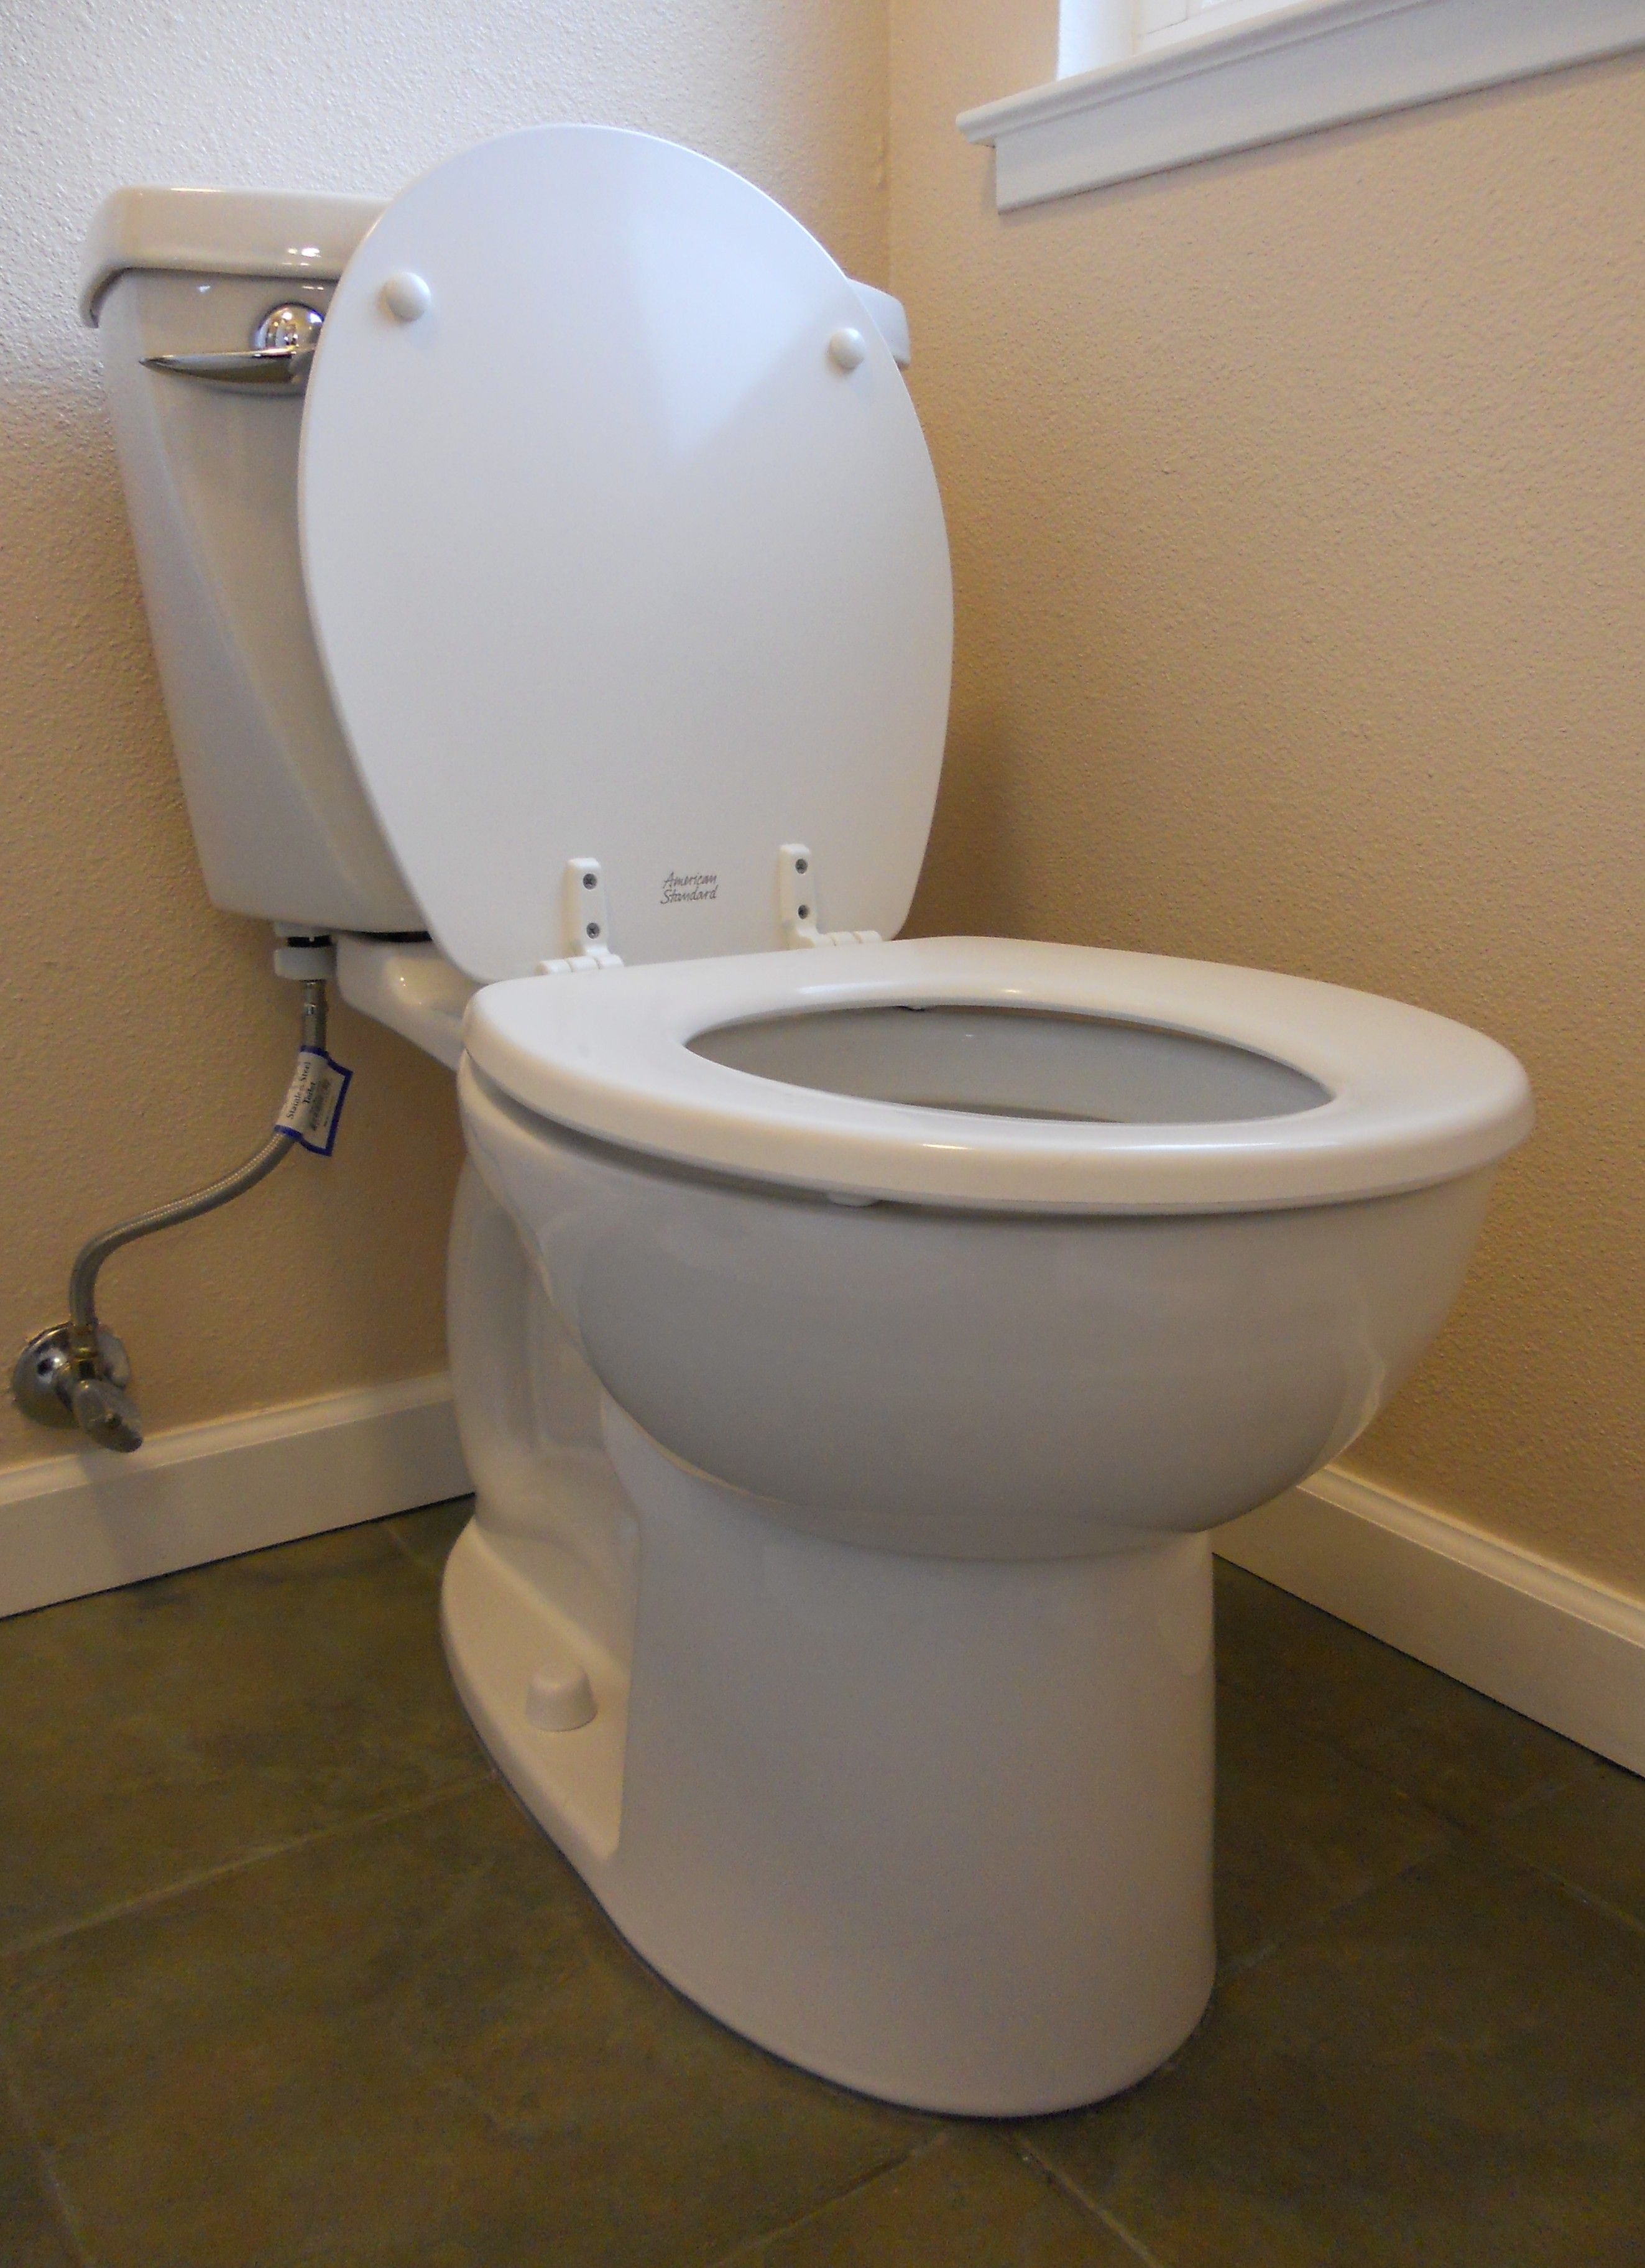 Bathroom clogged toilet - Clogged Toilet Paper If Toilet Paper Is Clogged In Your Toilet And Plunging It